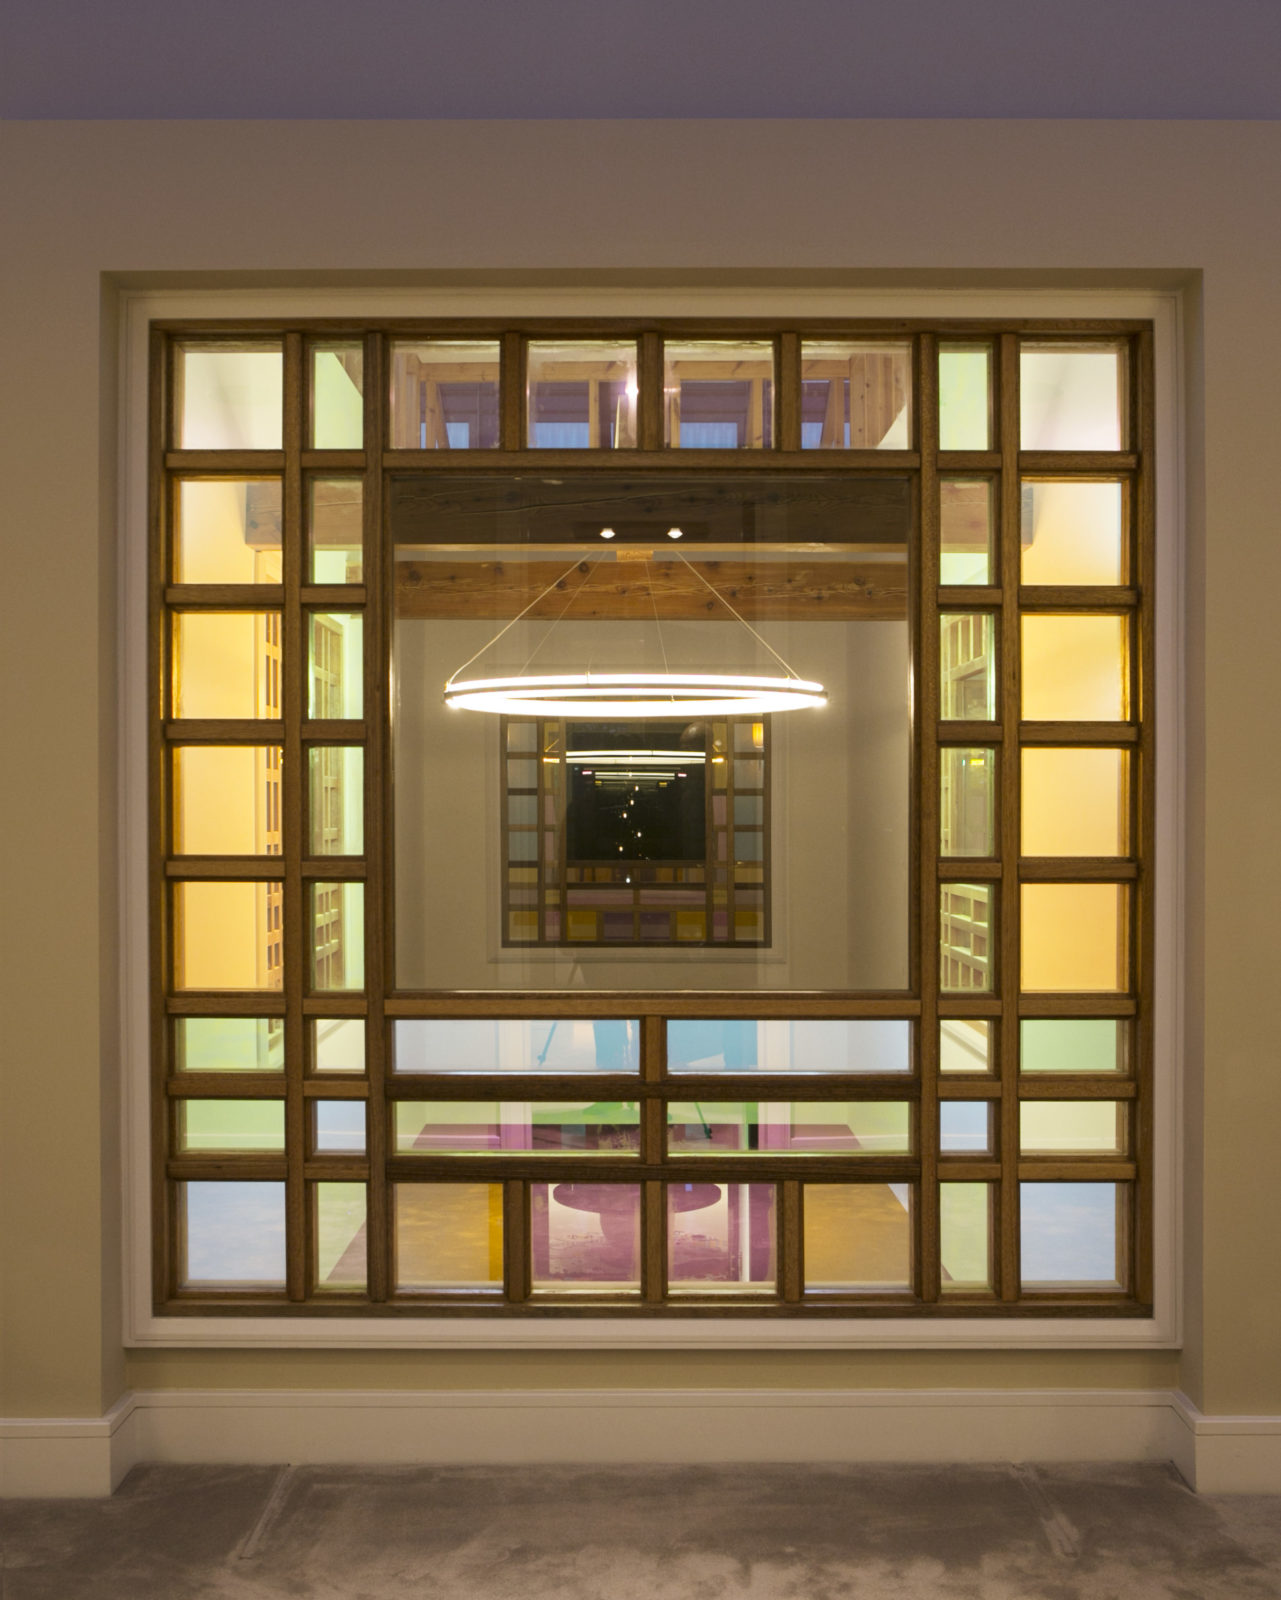 Dichroic glass and meranti frame internal window